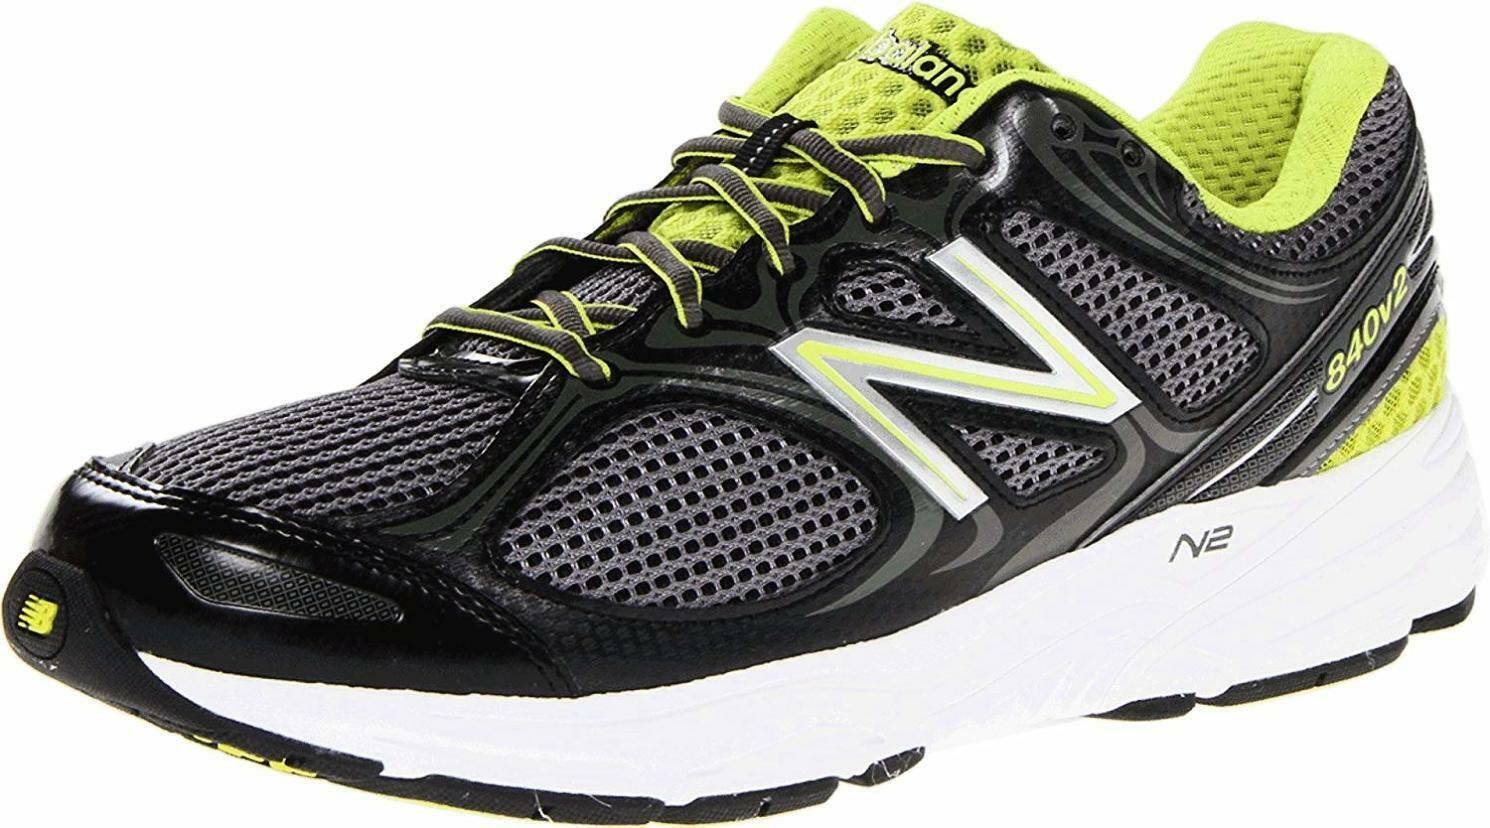 New Balance Men's M840v2 Running shoes - Choose SZ color